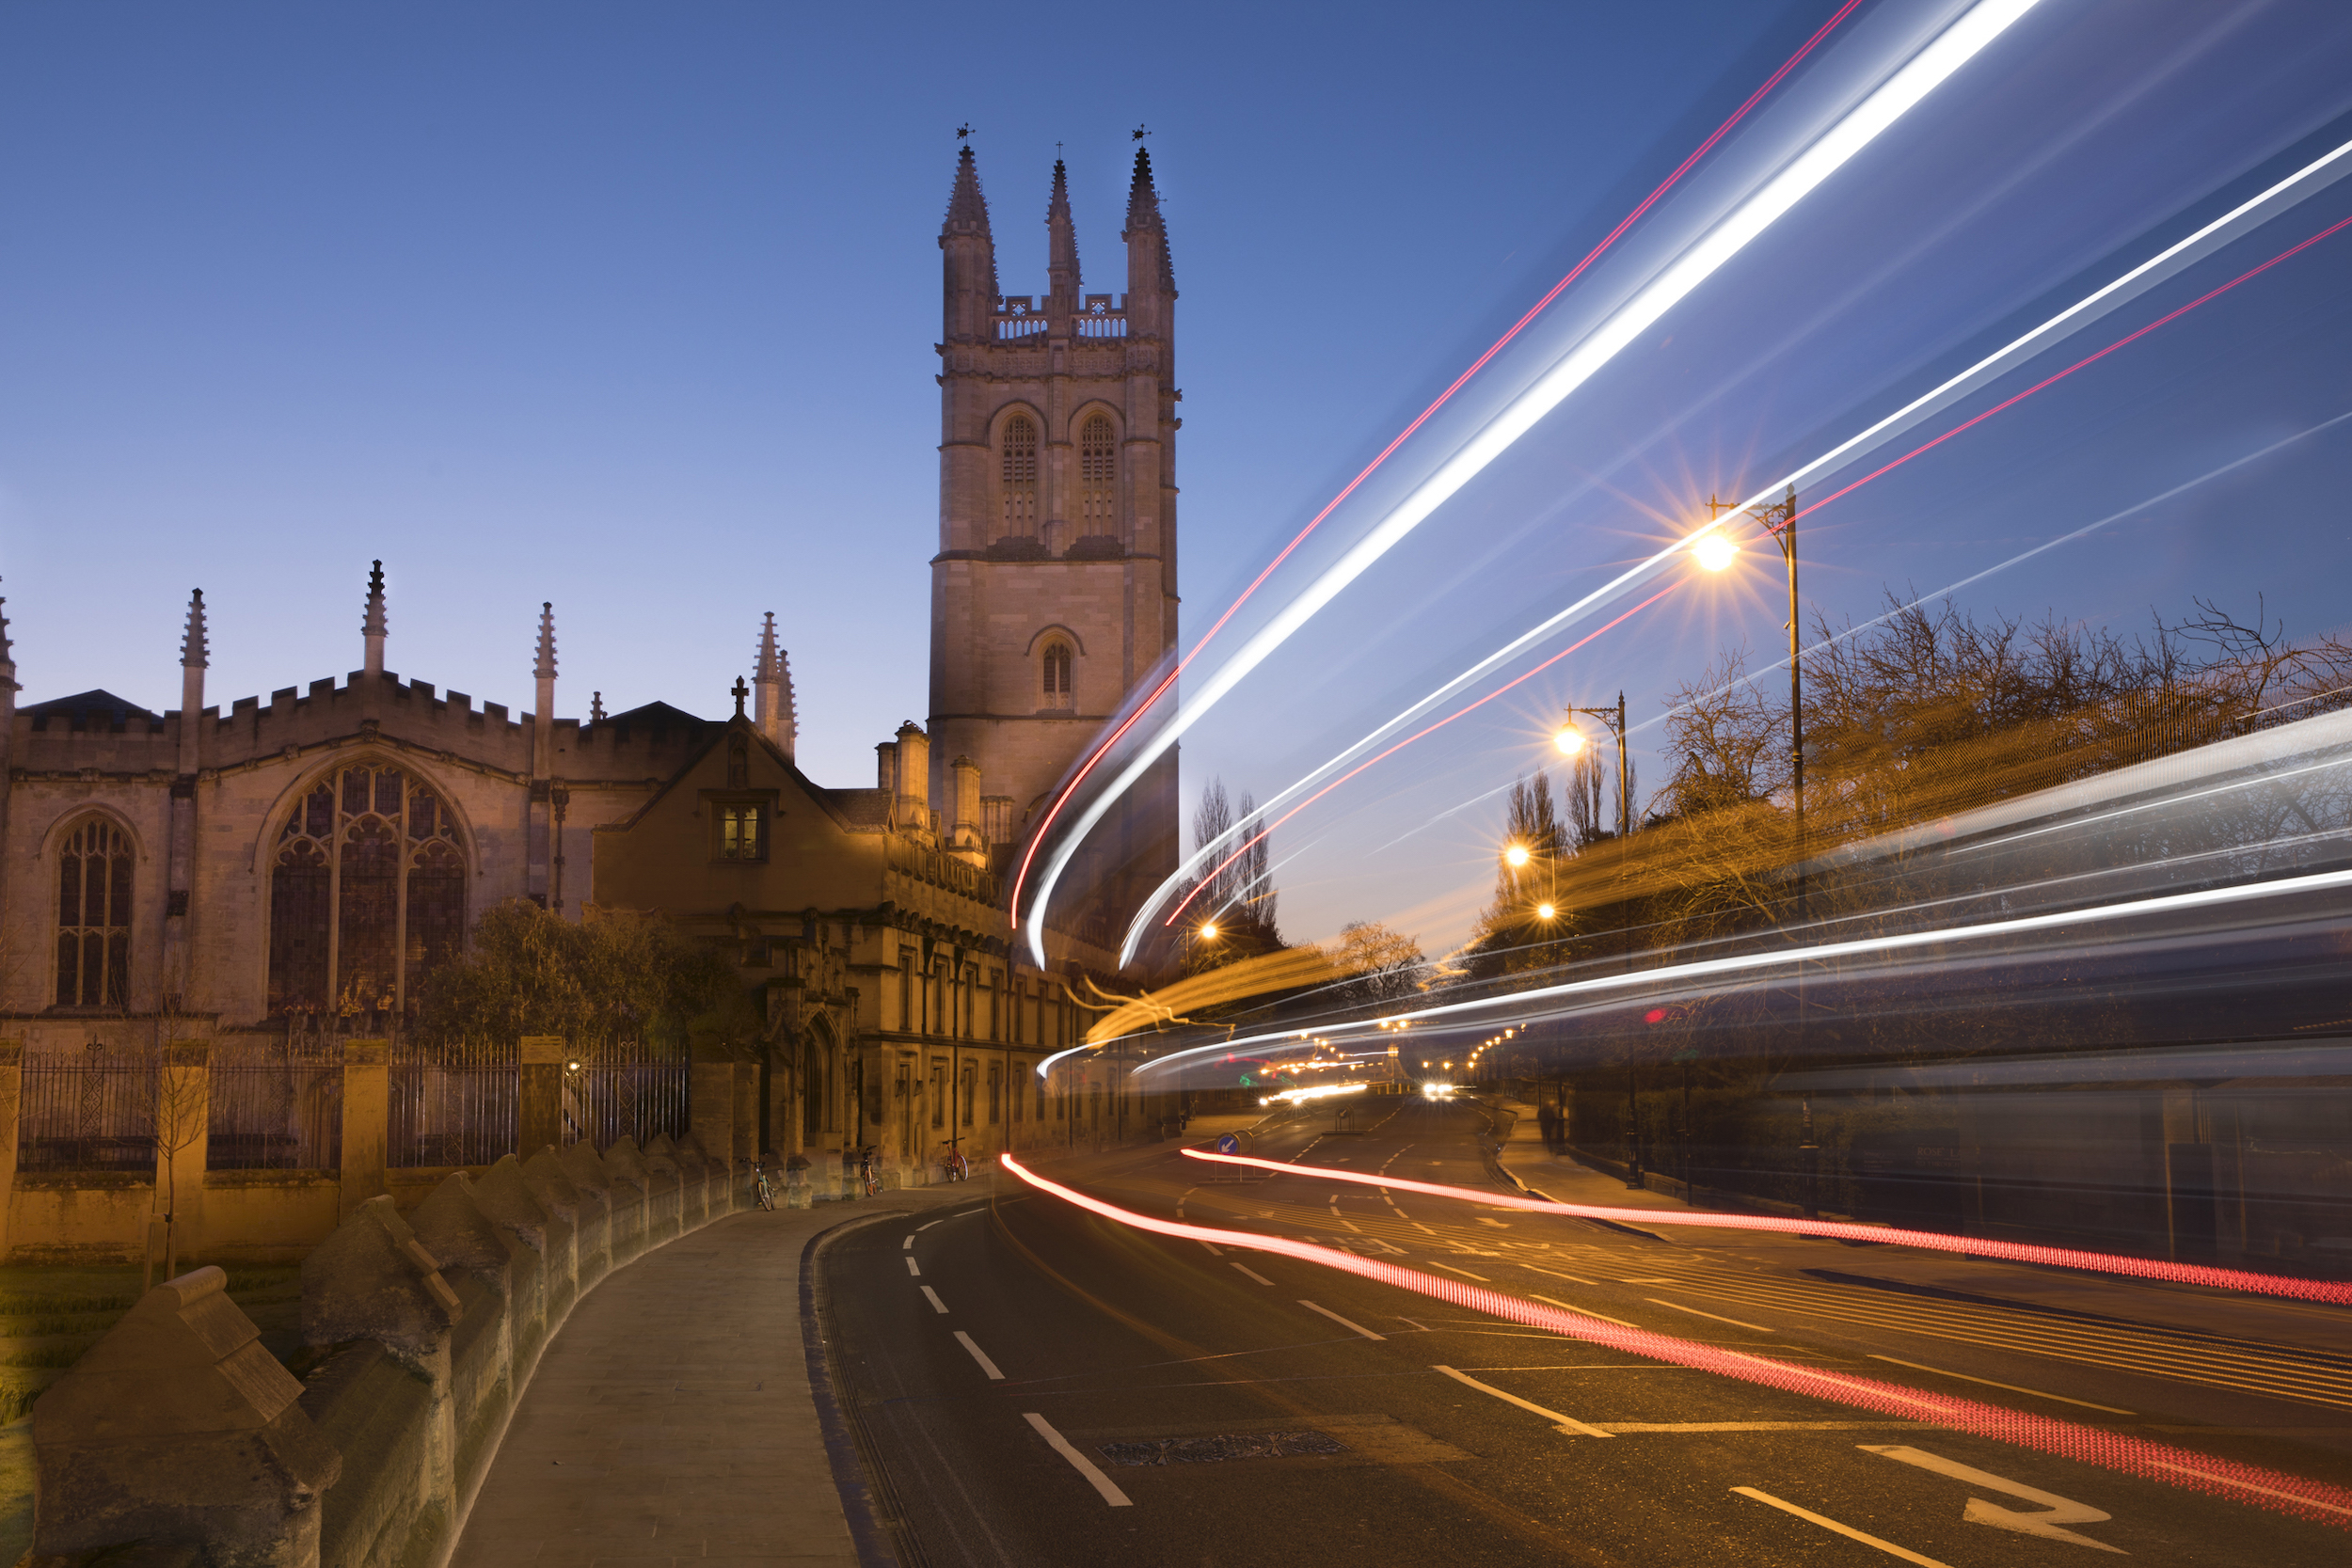 Light trails in Oxford, technique created by long exposure